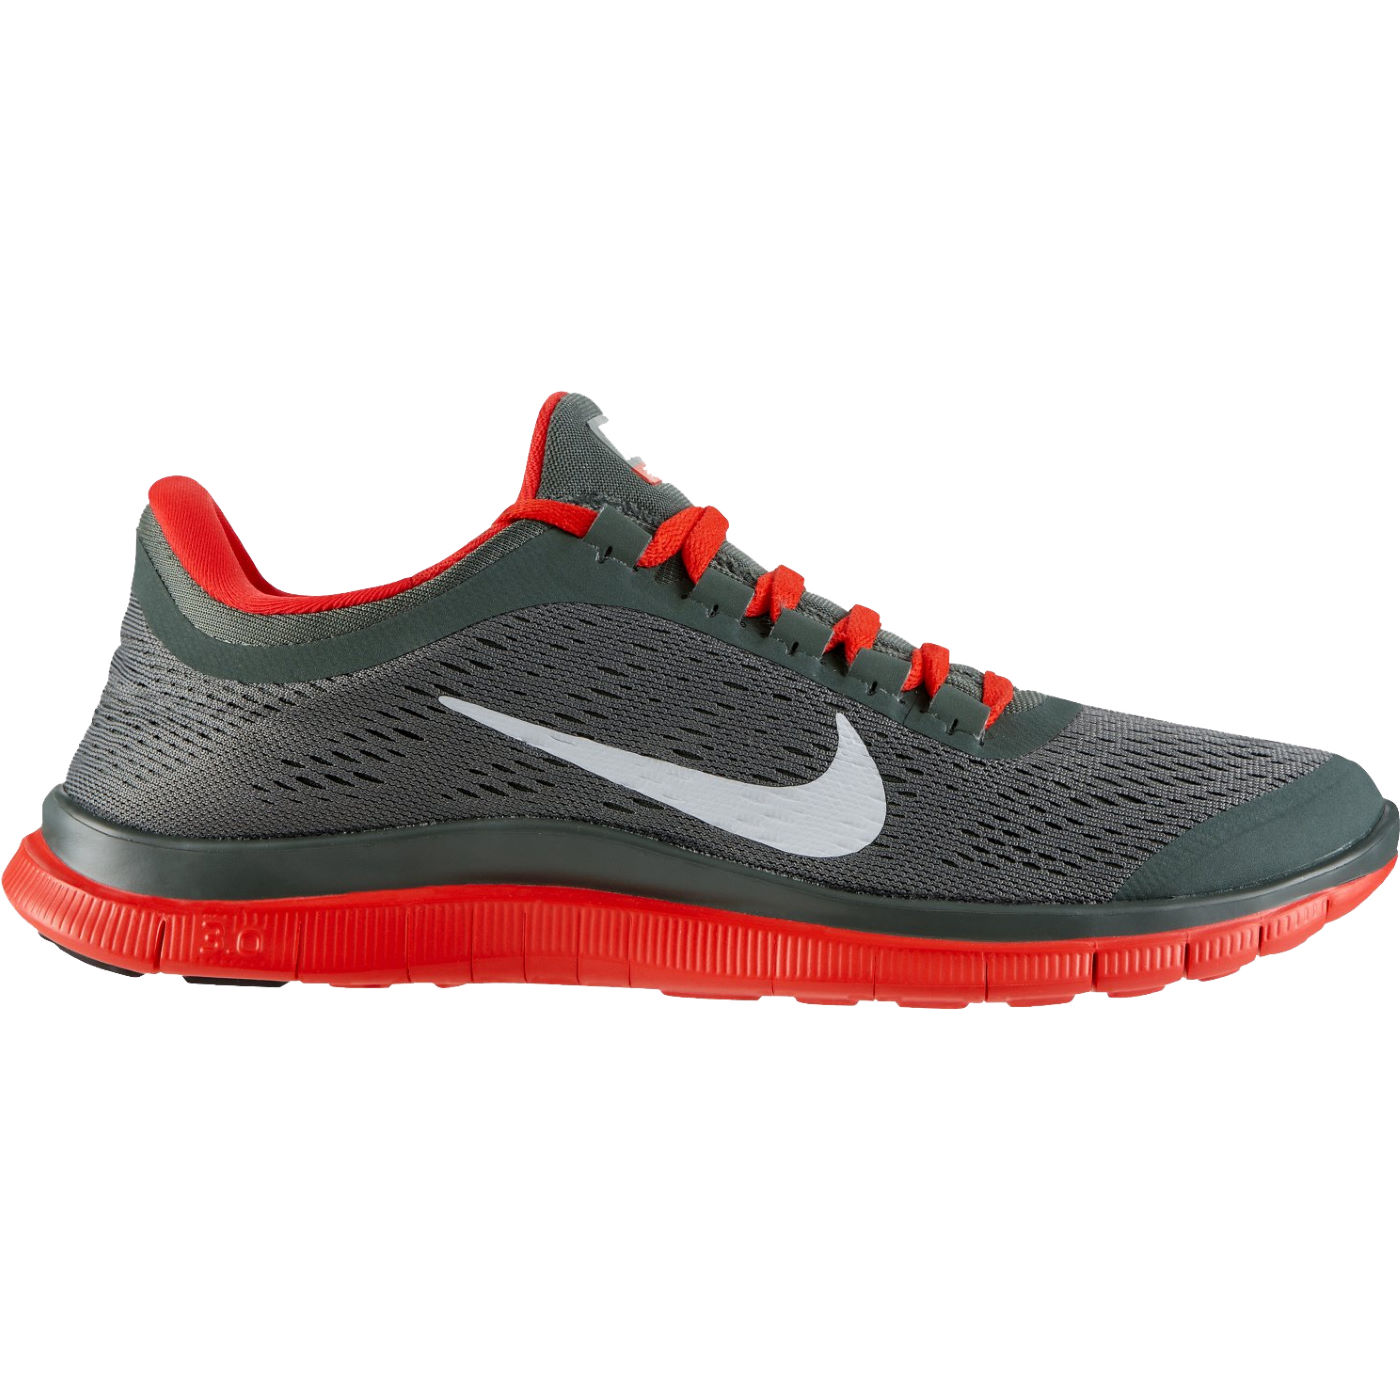 Cheap Nike free women 7.0 v.2 Cheap Nike free run women Fritzens